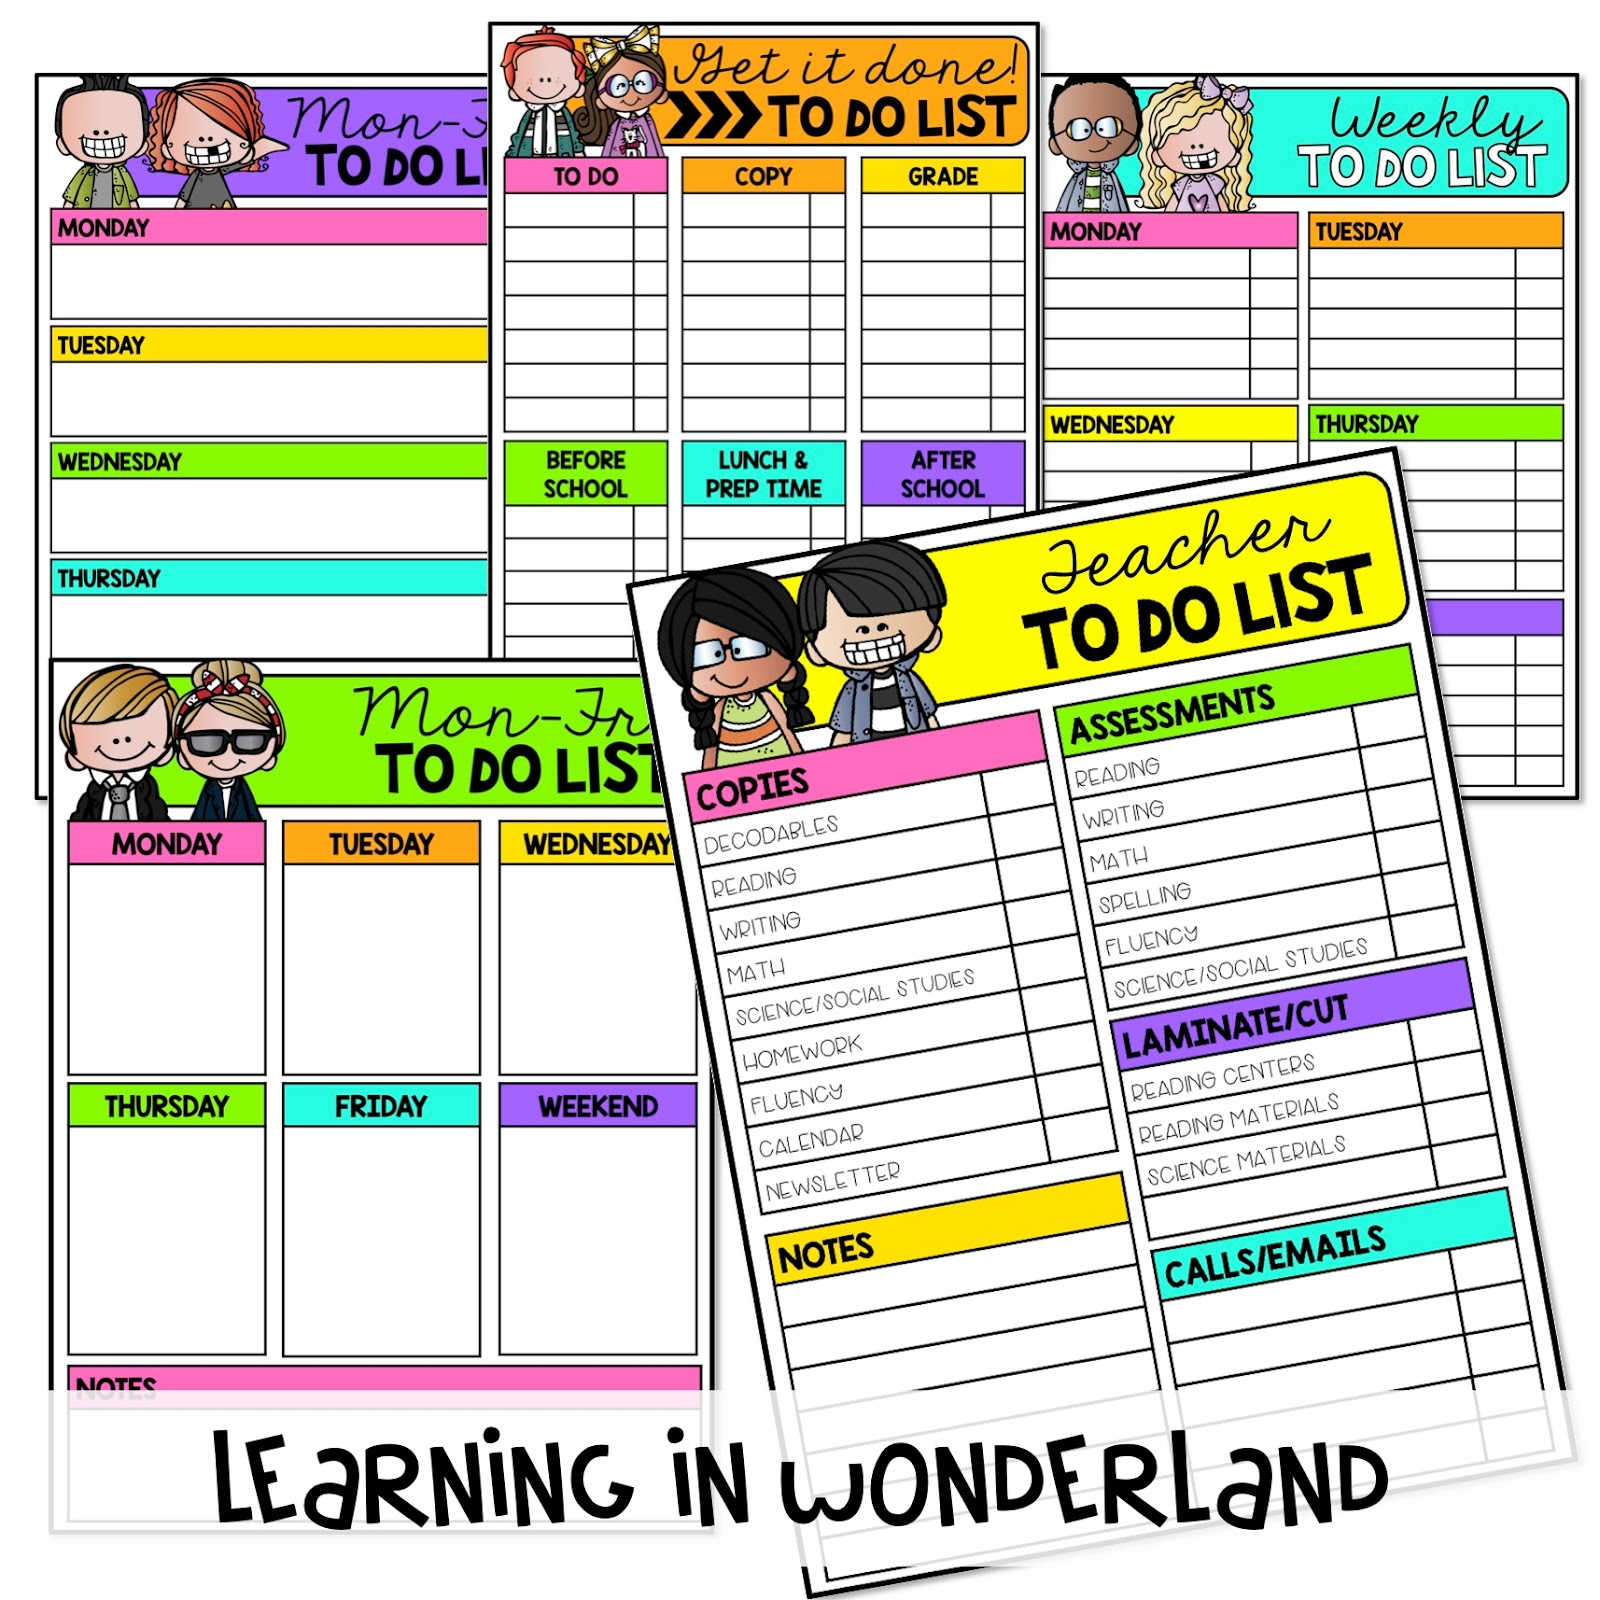 Use these checklists to get everything done and stay organized!